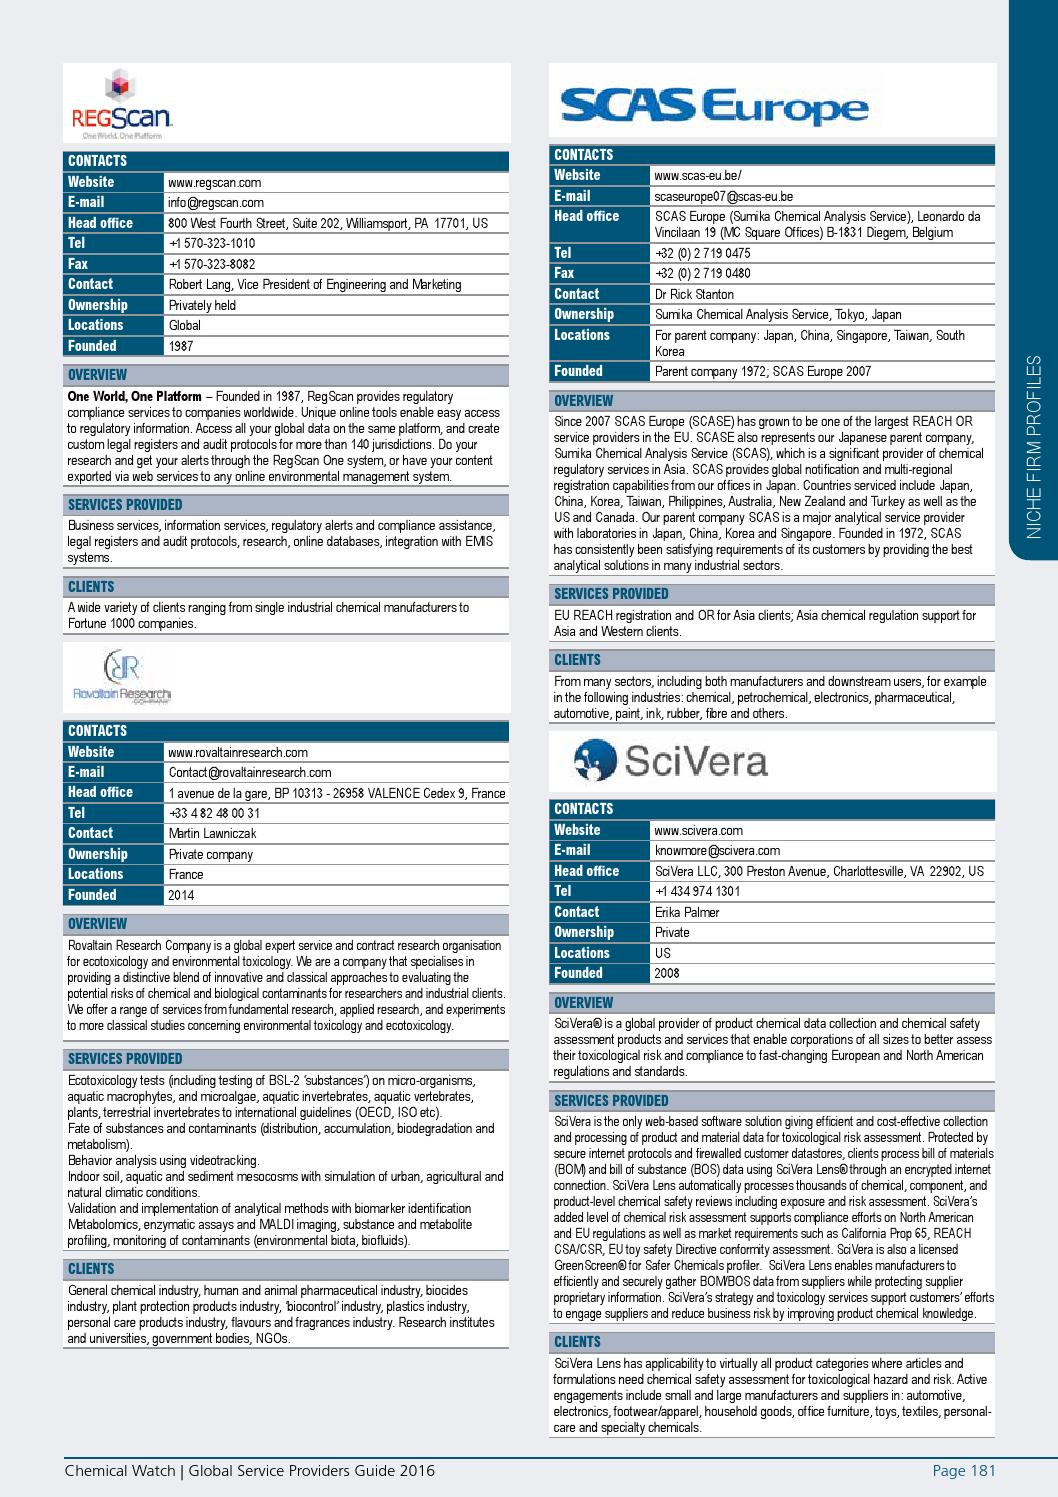 Chemical Watch Service Providers Guide 2016 by Chemical